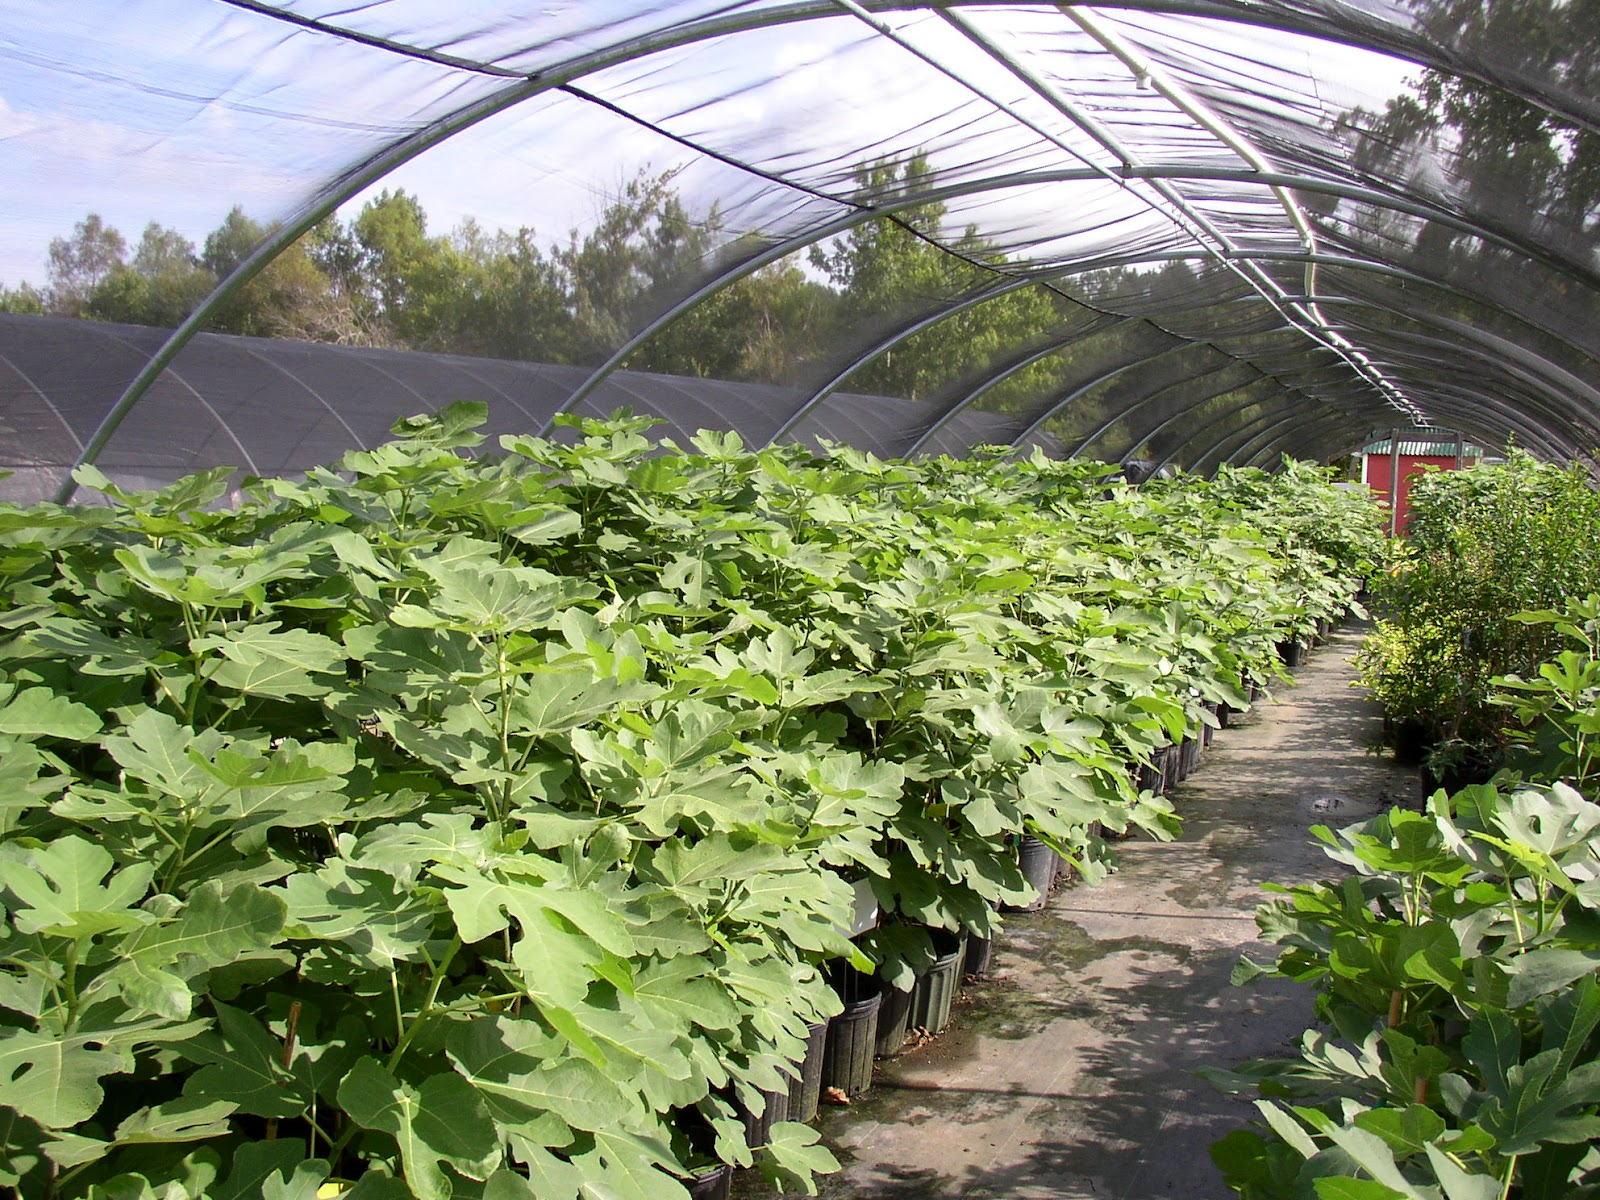 First Year Fig Trees In Covered Hoop House Paradise Nursery